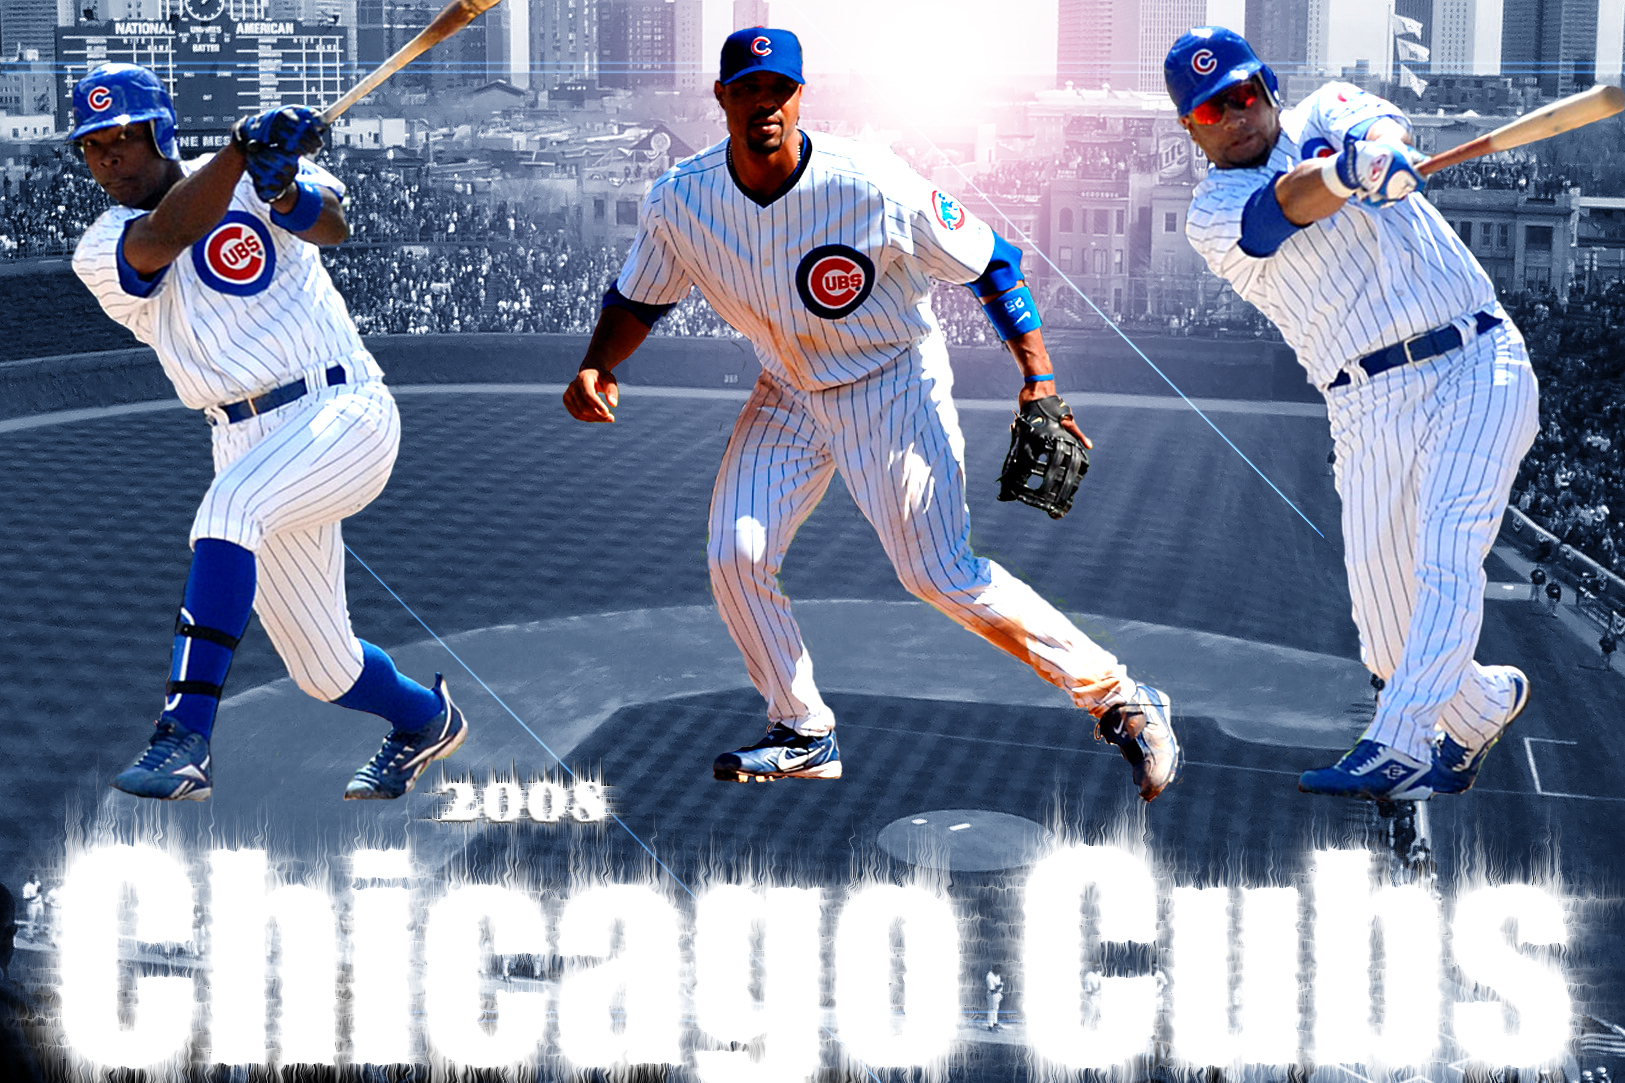 2008 chicago cubs wallpaper by chicagosportsown fan art wallpaper 1625x1083